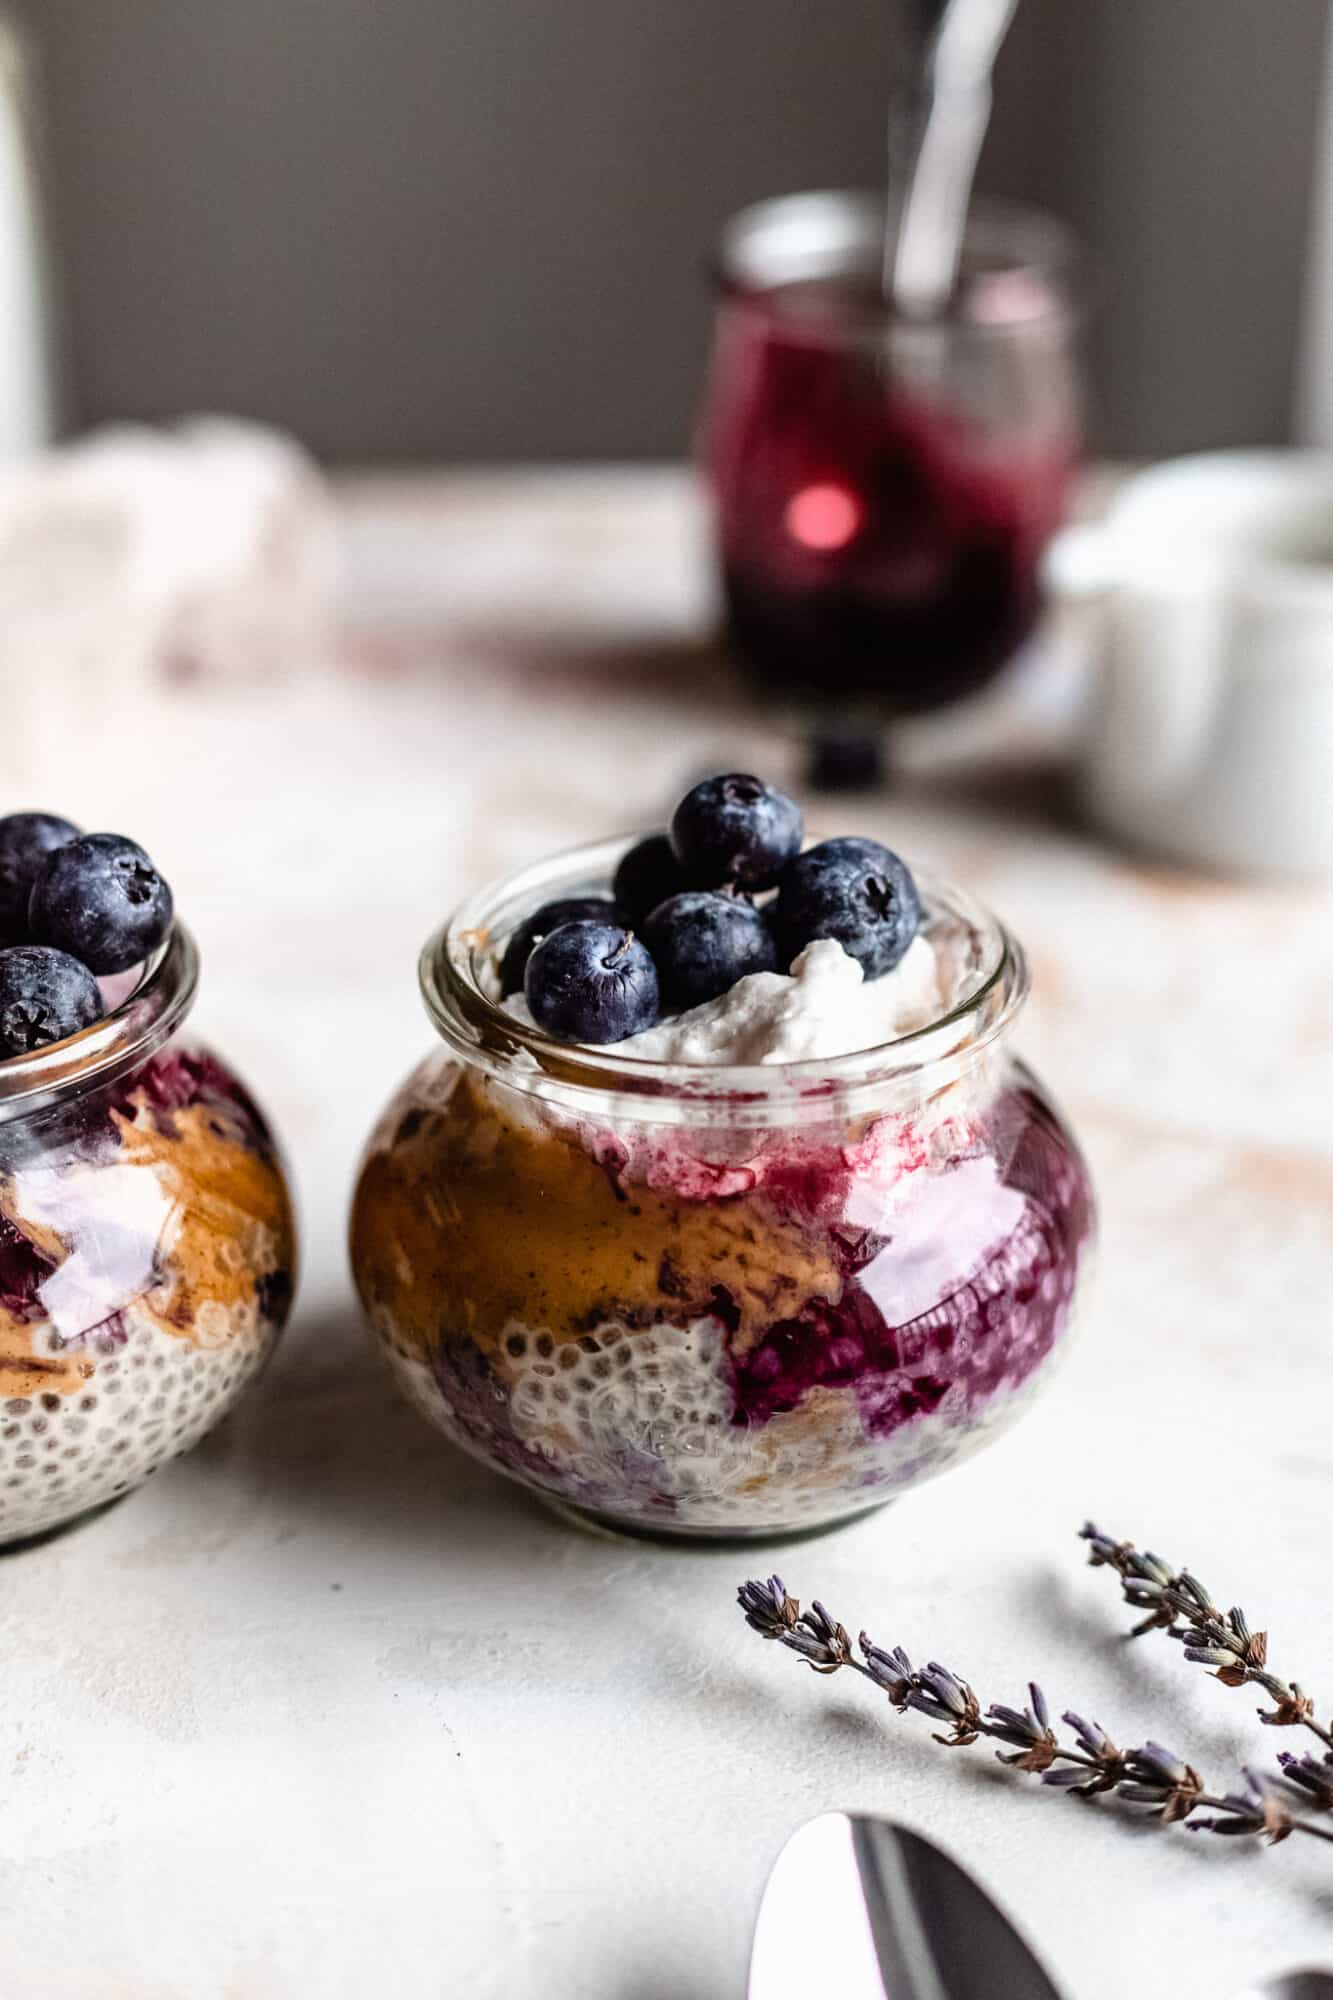 peanut butter chia pudding topped with blueberries